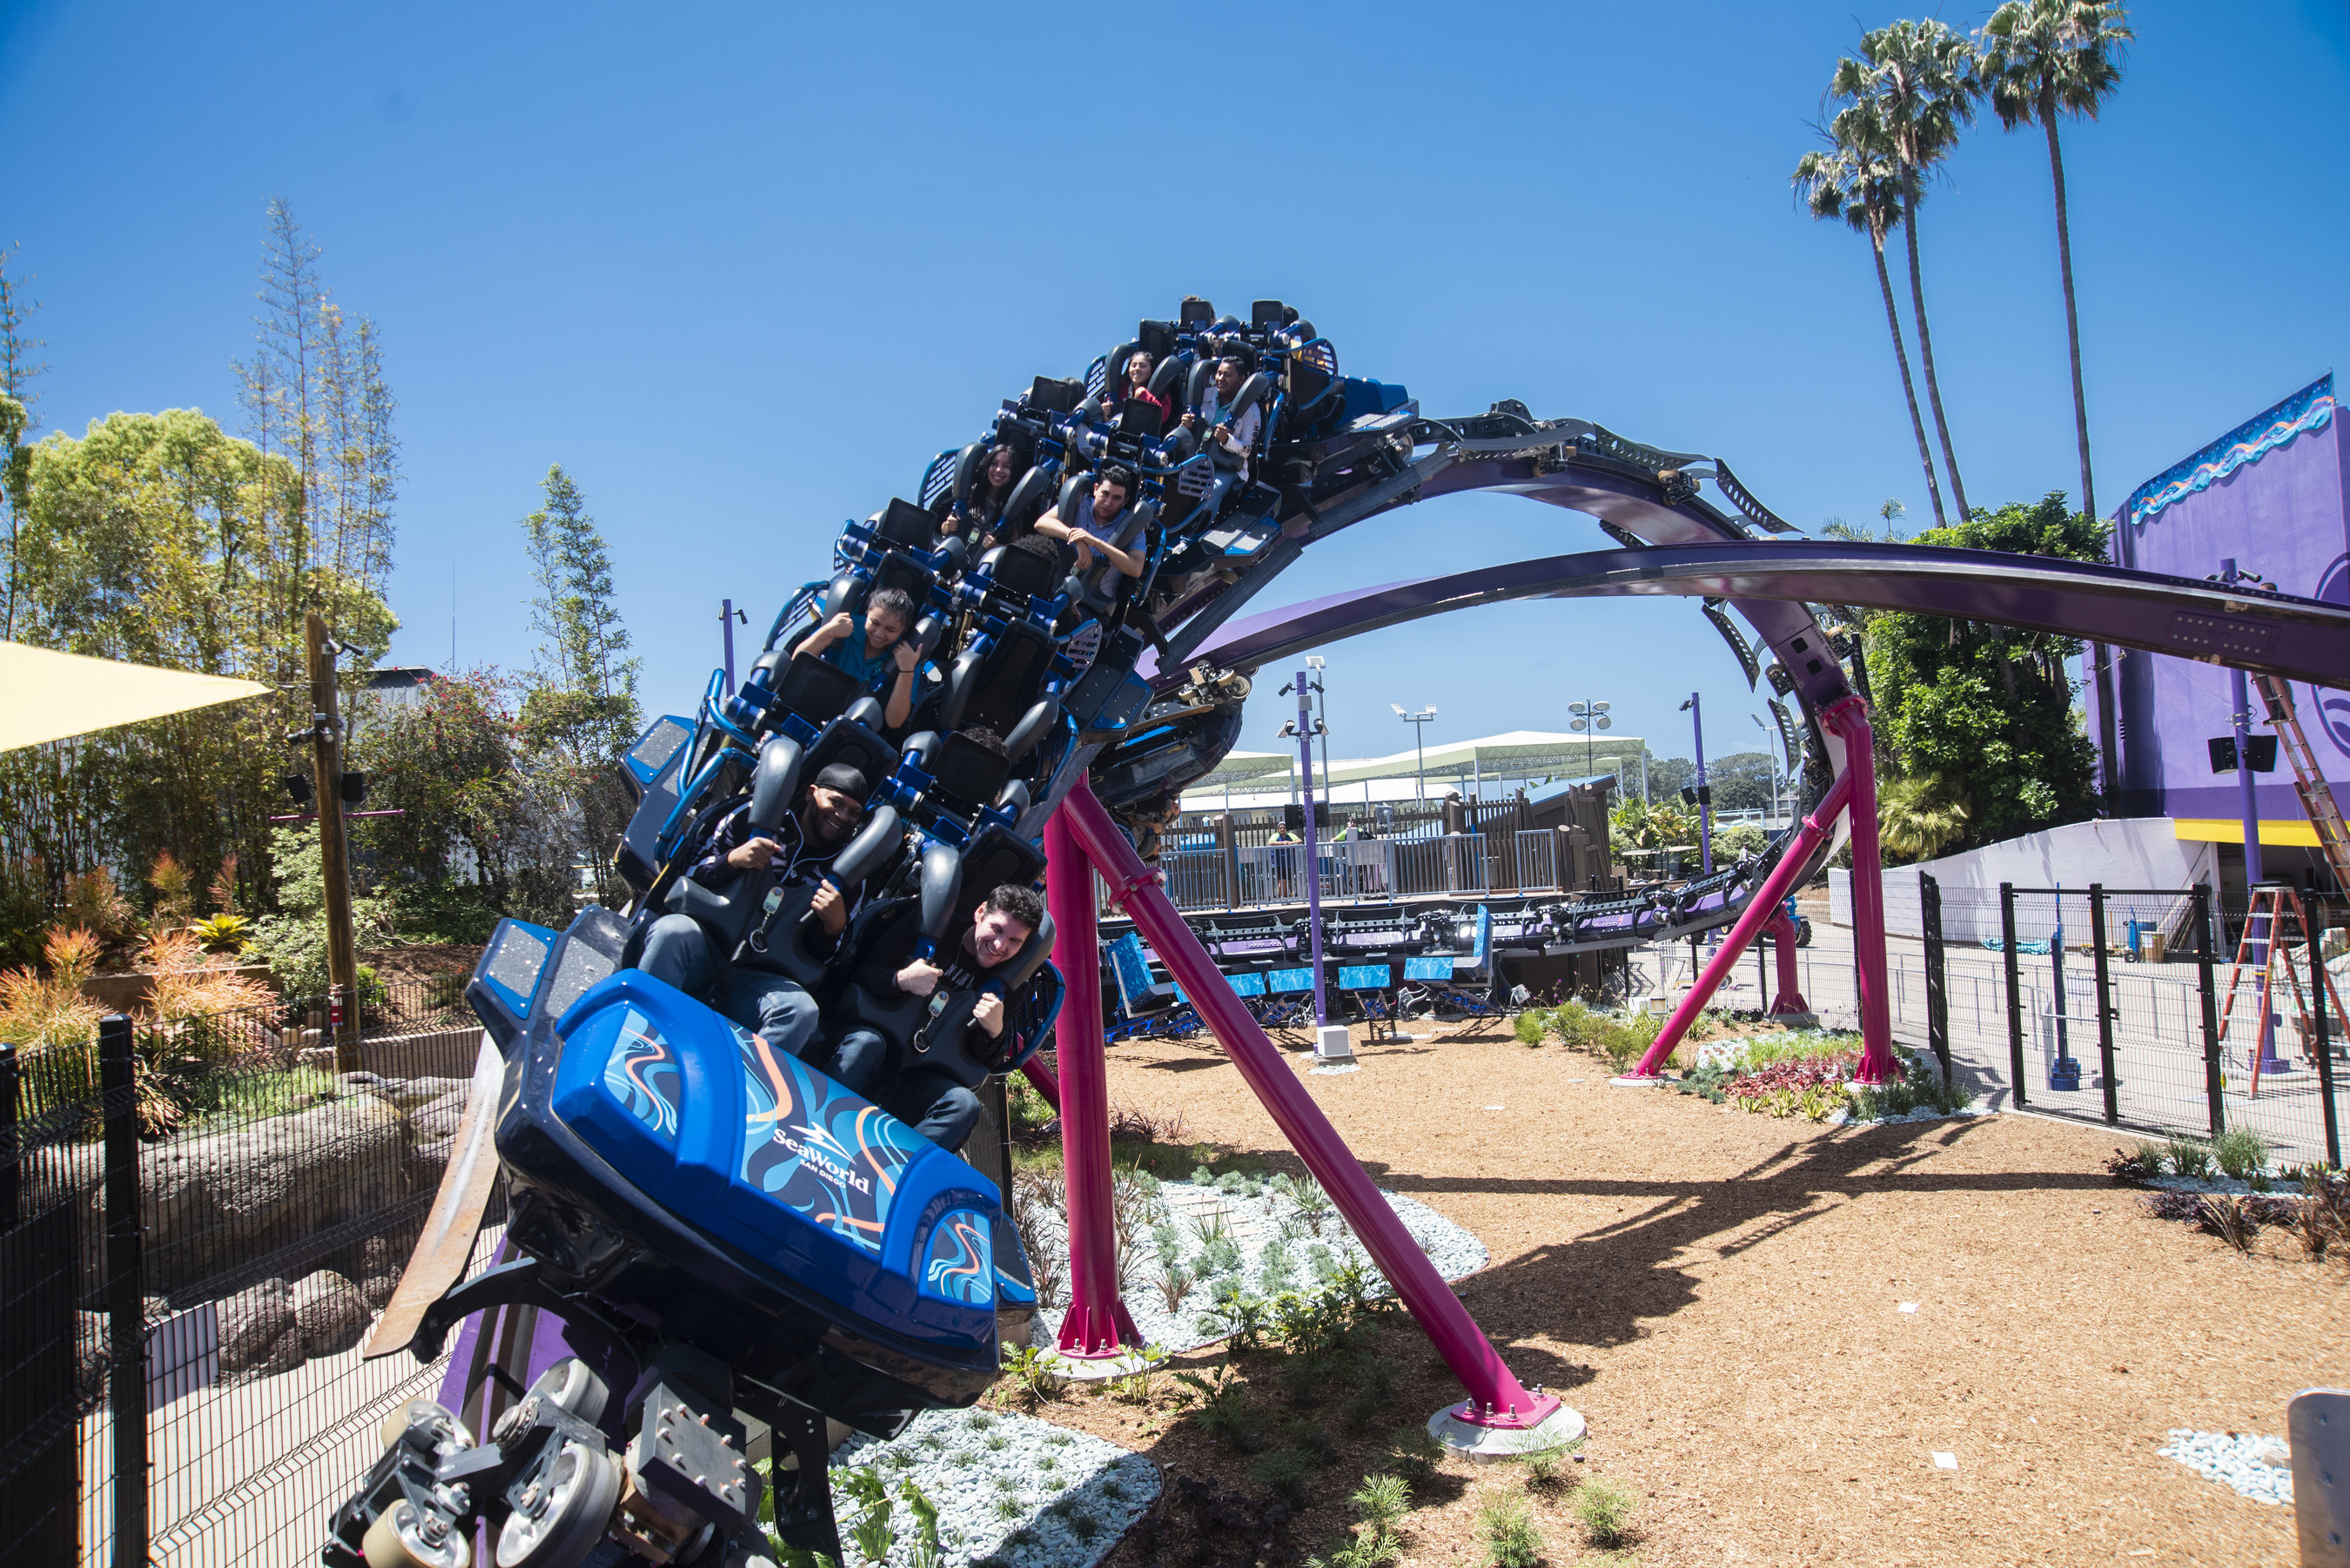 Seaworld San Diego S Dueling Roller Coaster Tidal Twister The First Of Its Kind In The World Is Now Open